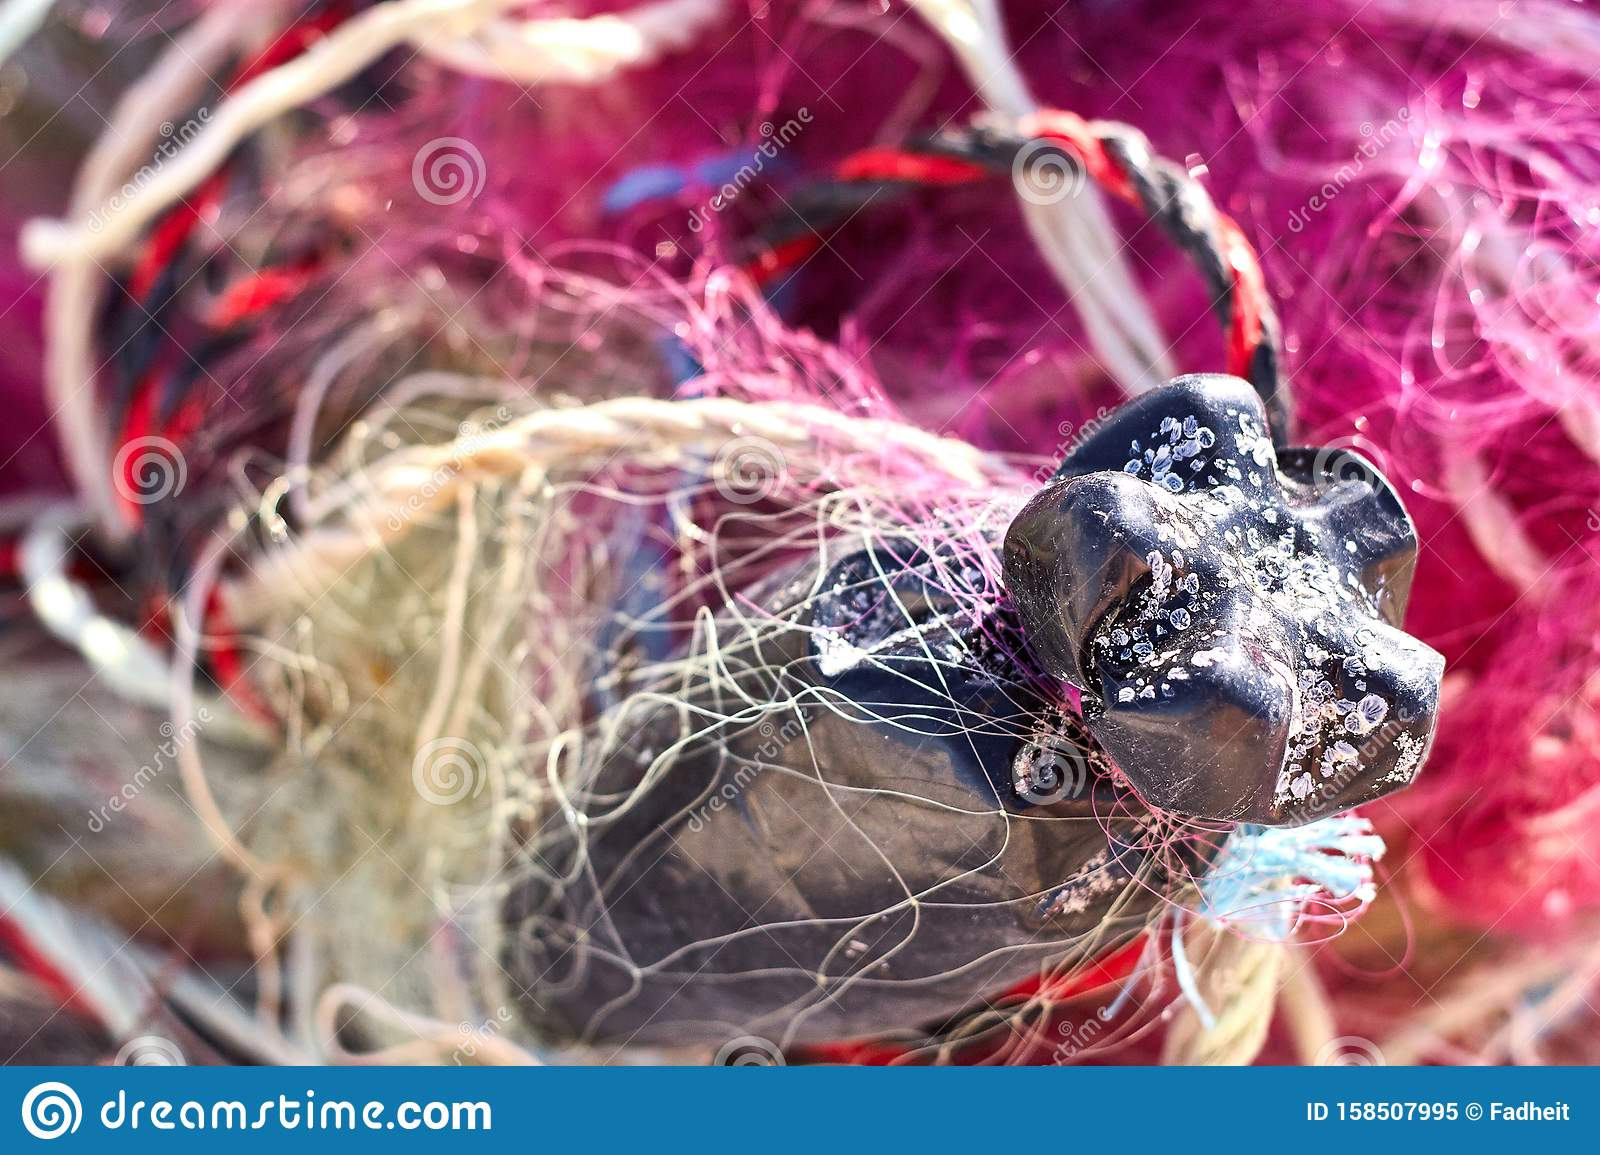 A Tangled Mess Of Fishing Nets Plastic Rope And Other Debris Washed Up On A Coastal Beach Stock Image Image Of String Pollution 158507995